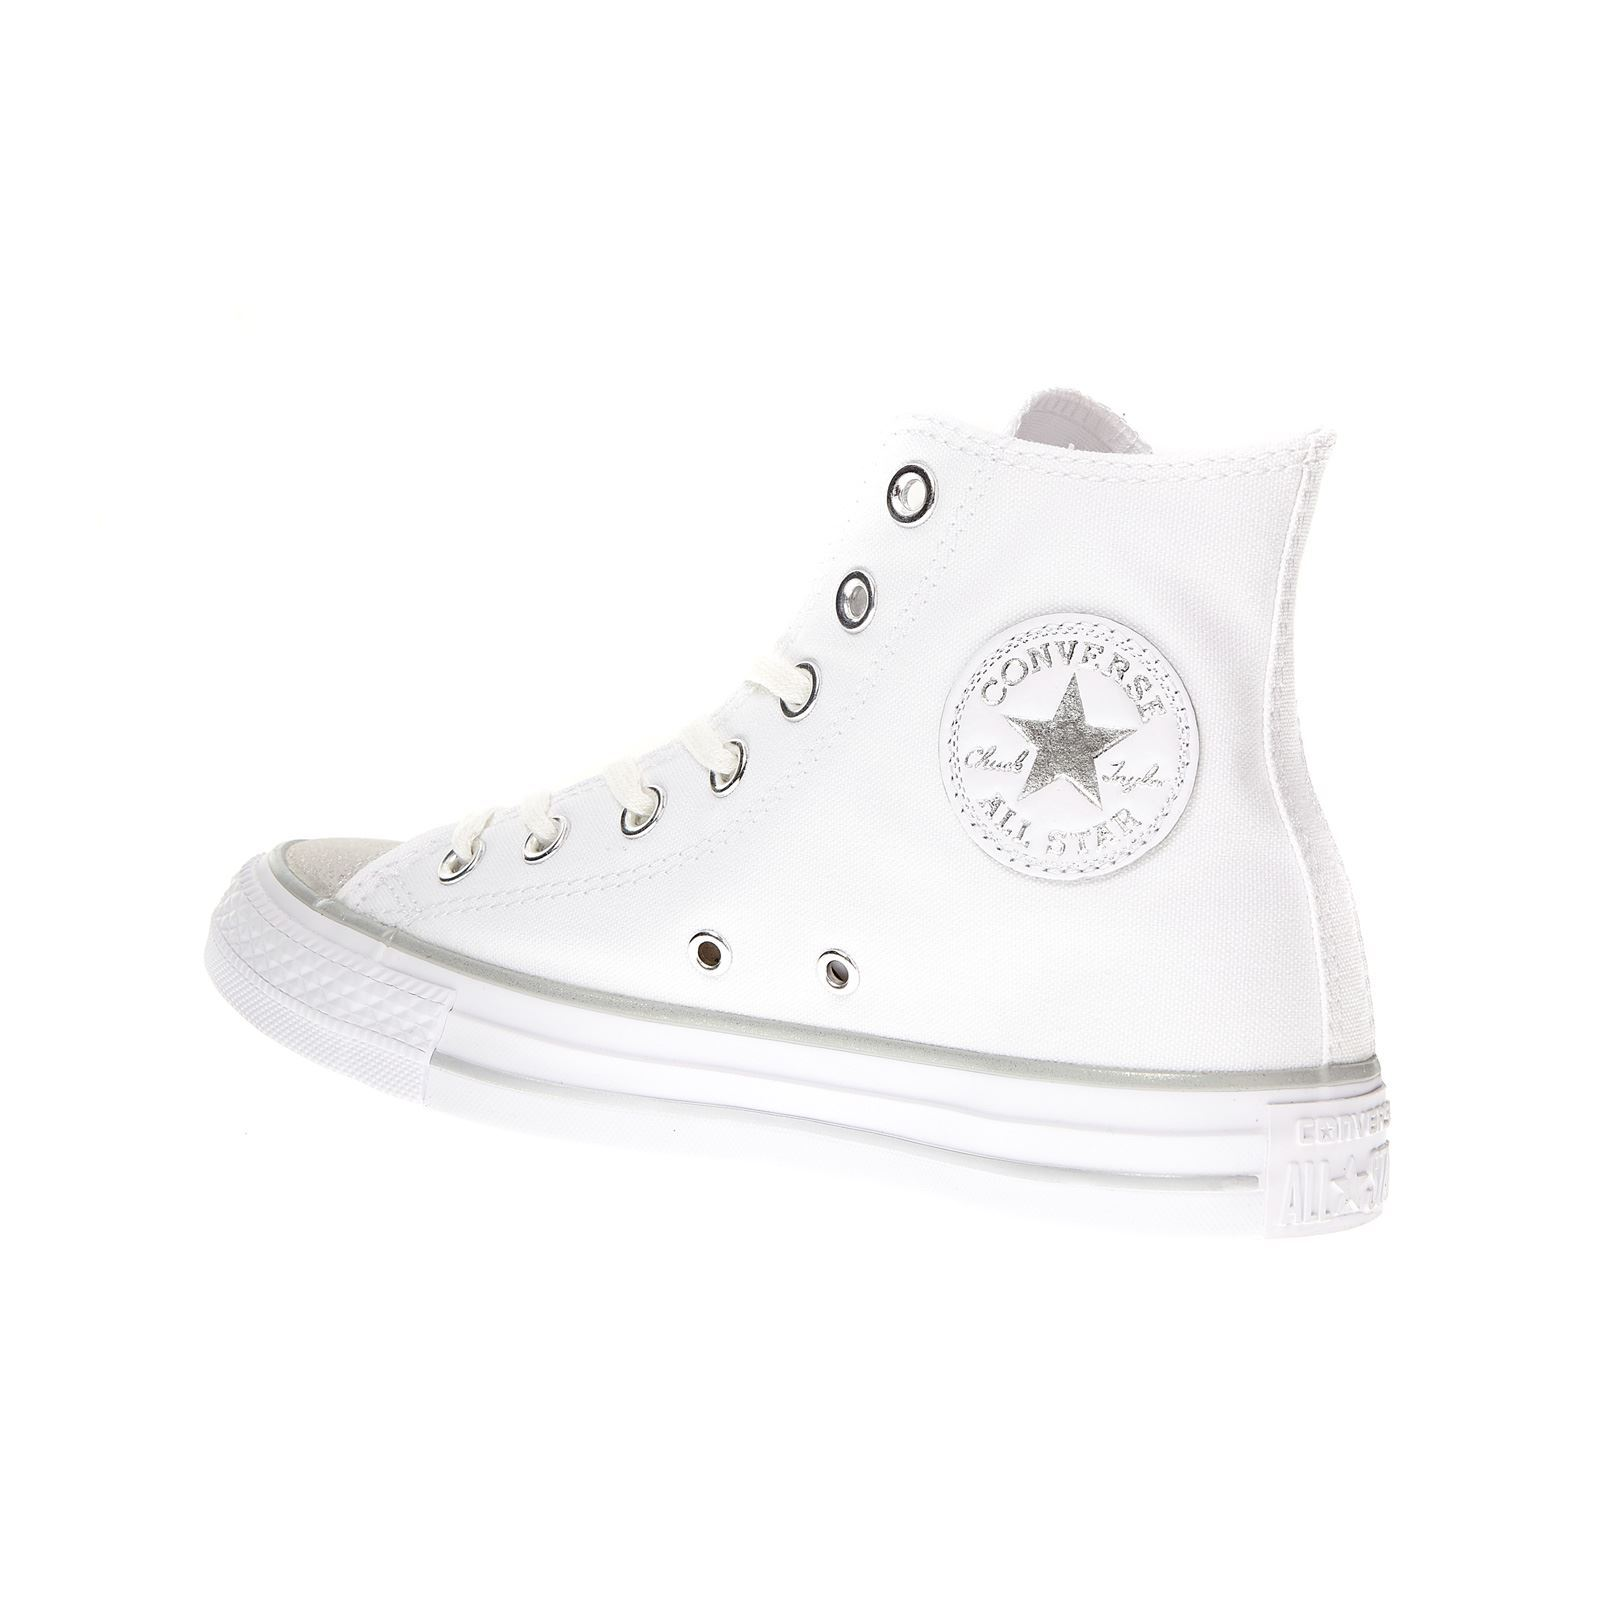 Converse Chaussures CHUCK TAYLOR ALL STAR HI TIPPED METALLIC TOECAP